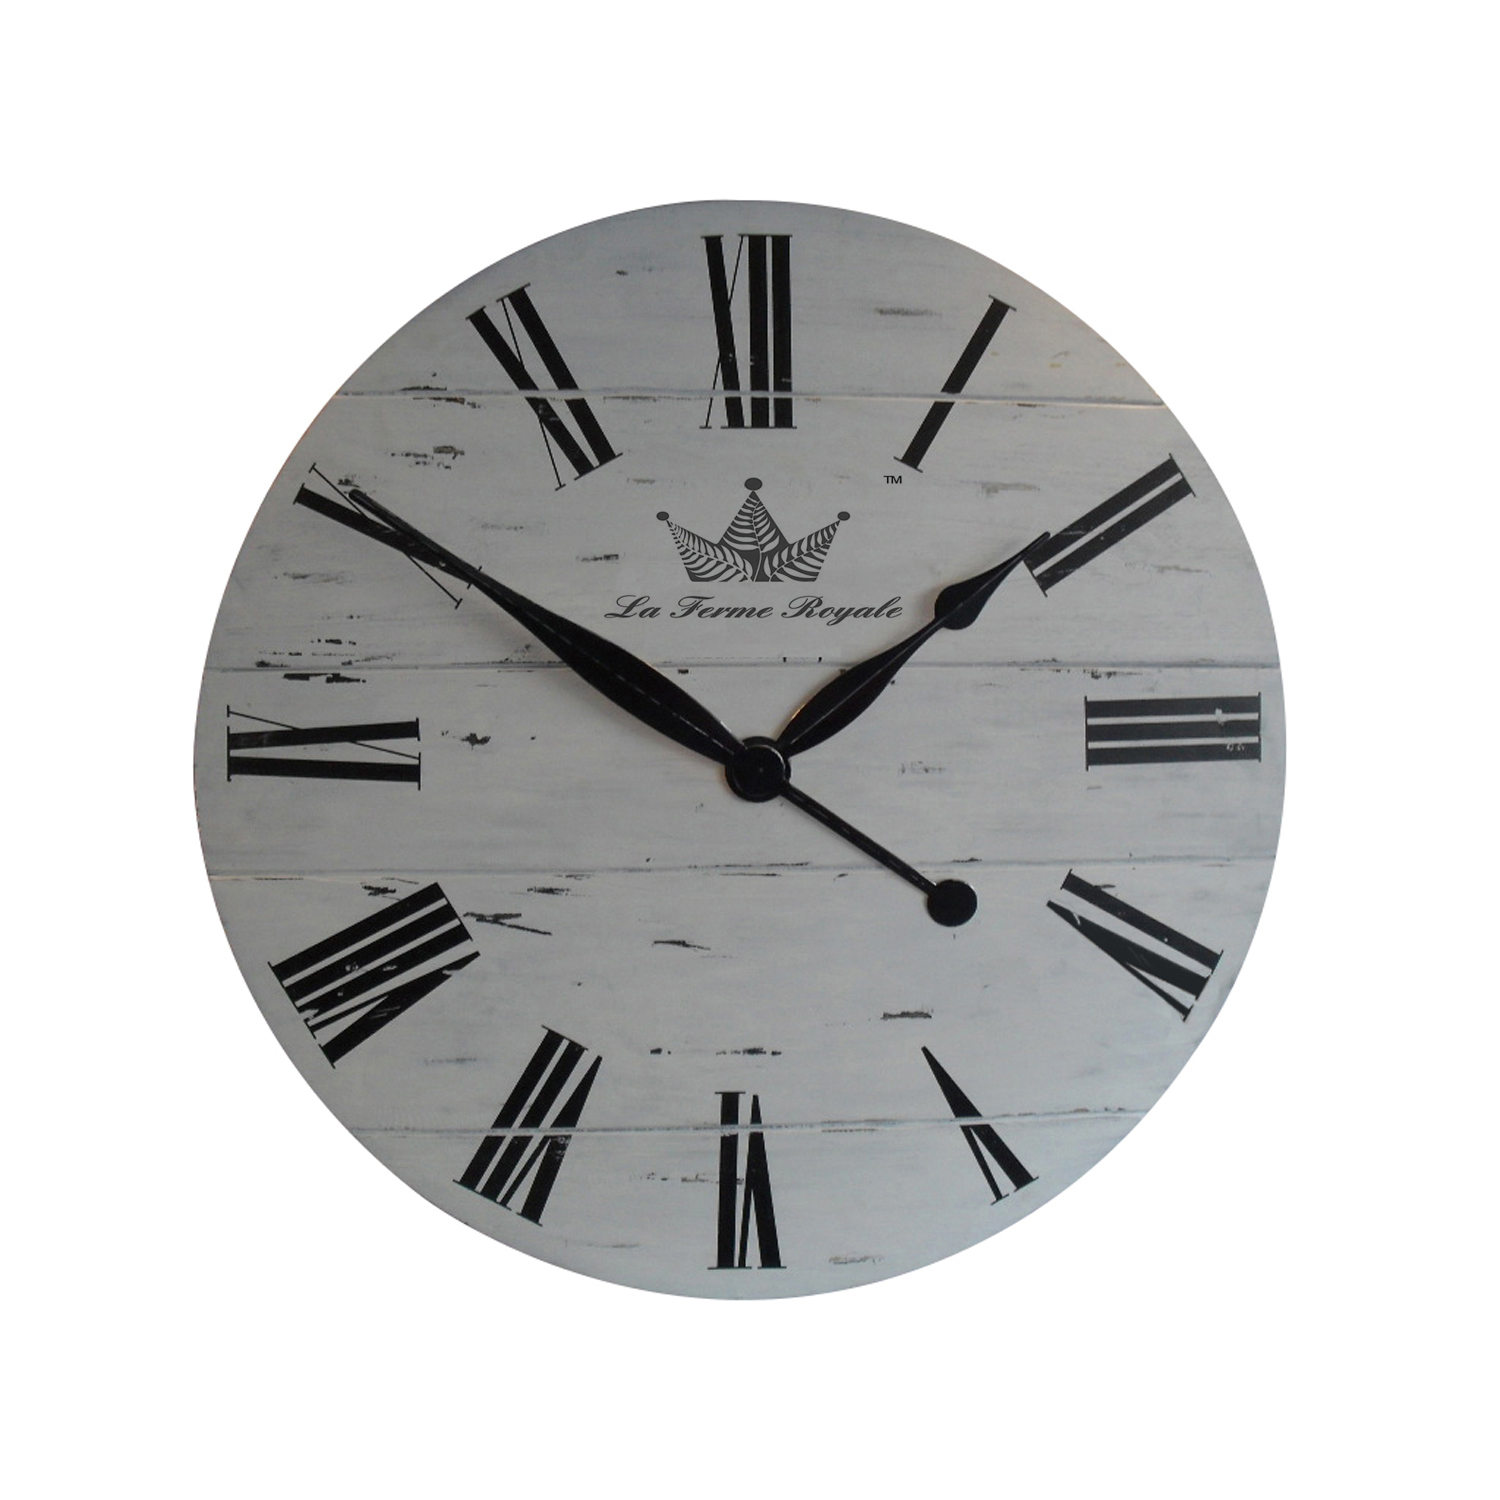 La Ferme Royale wall clock